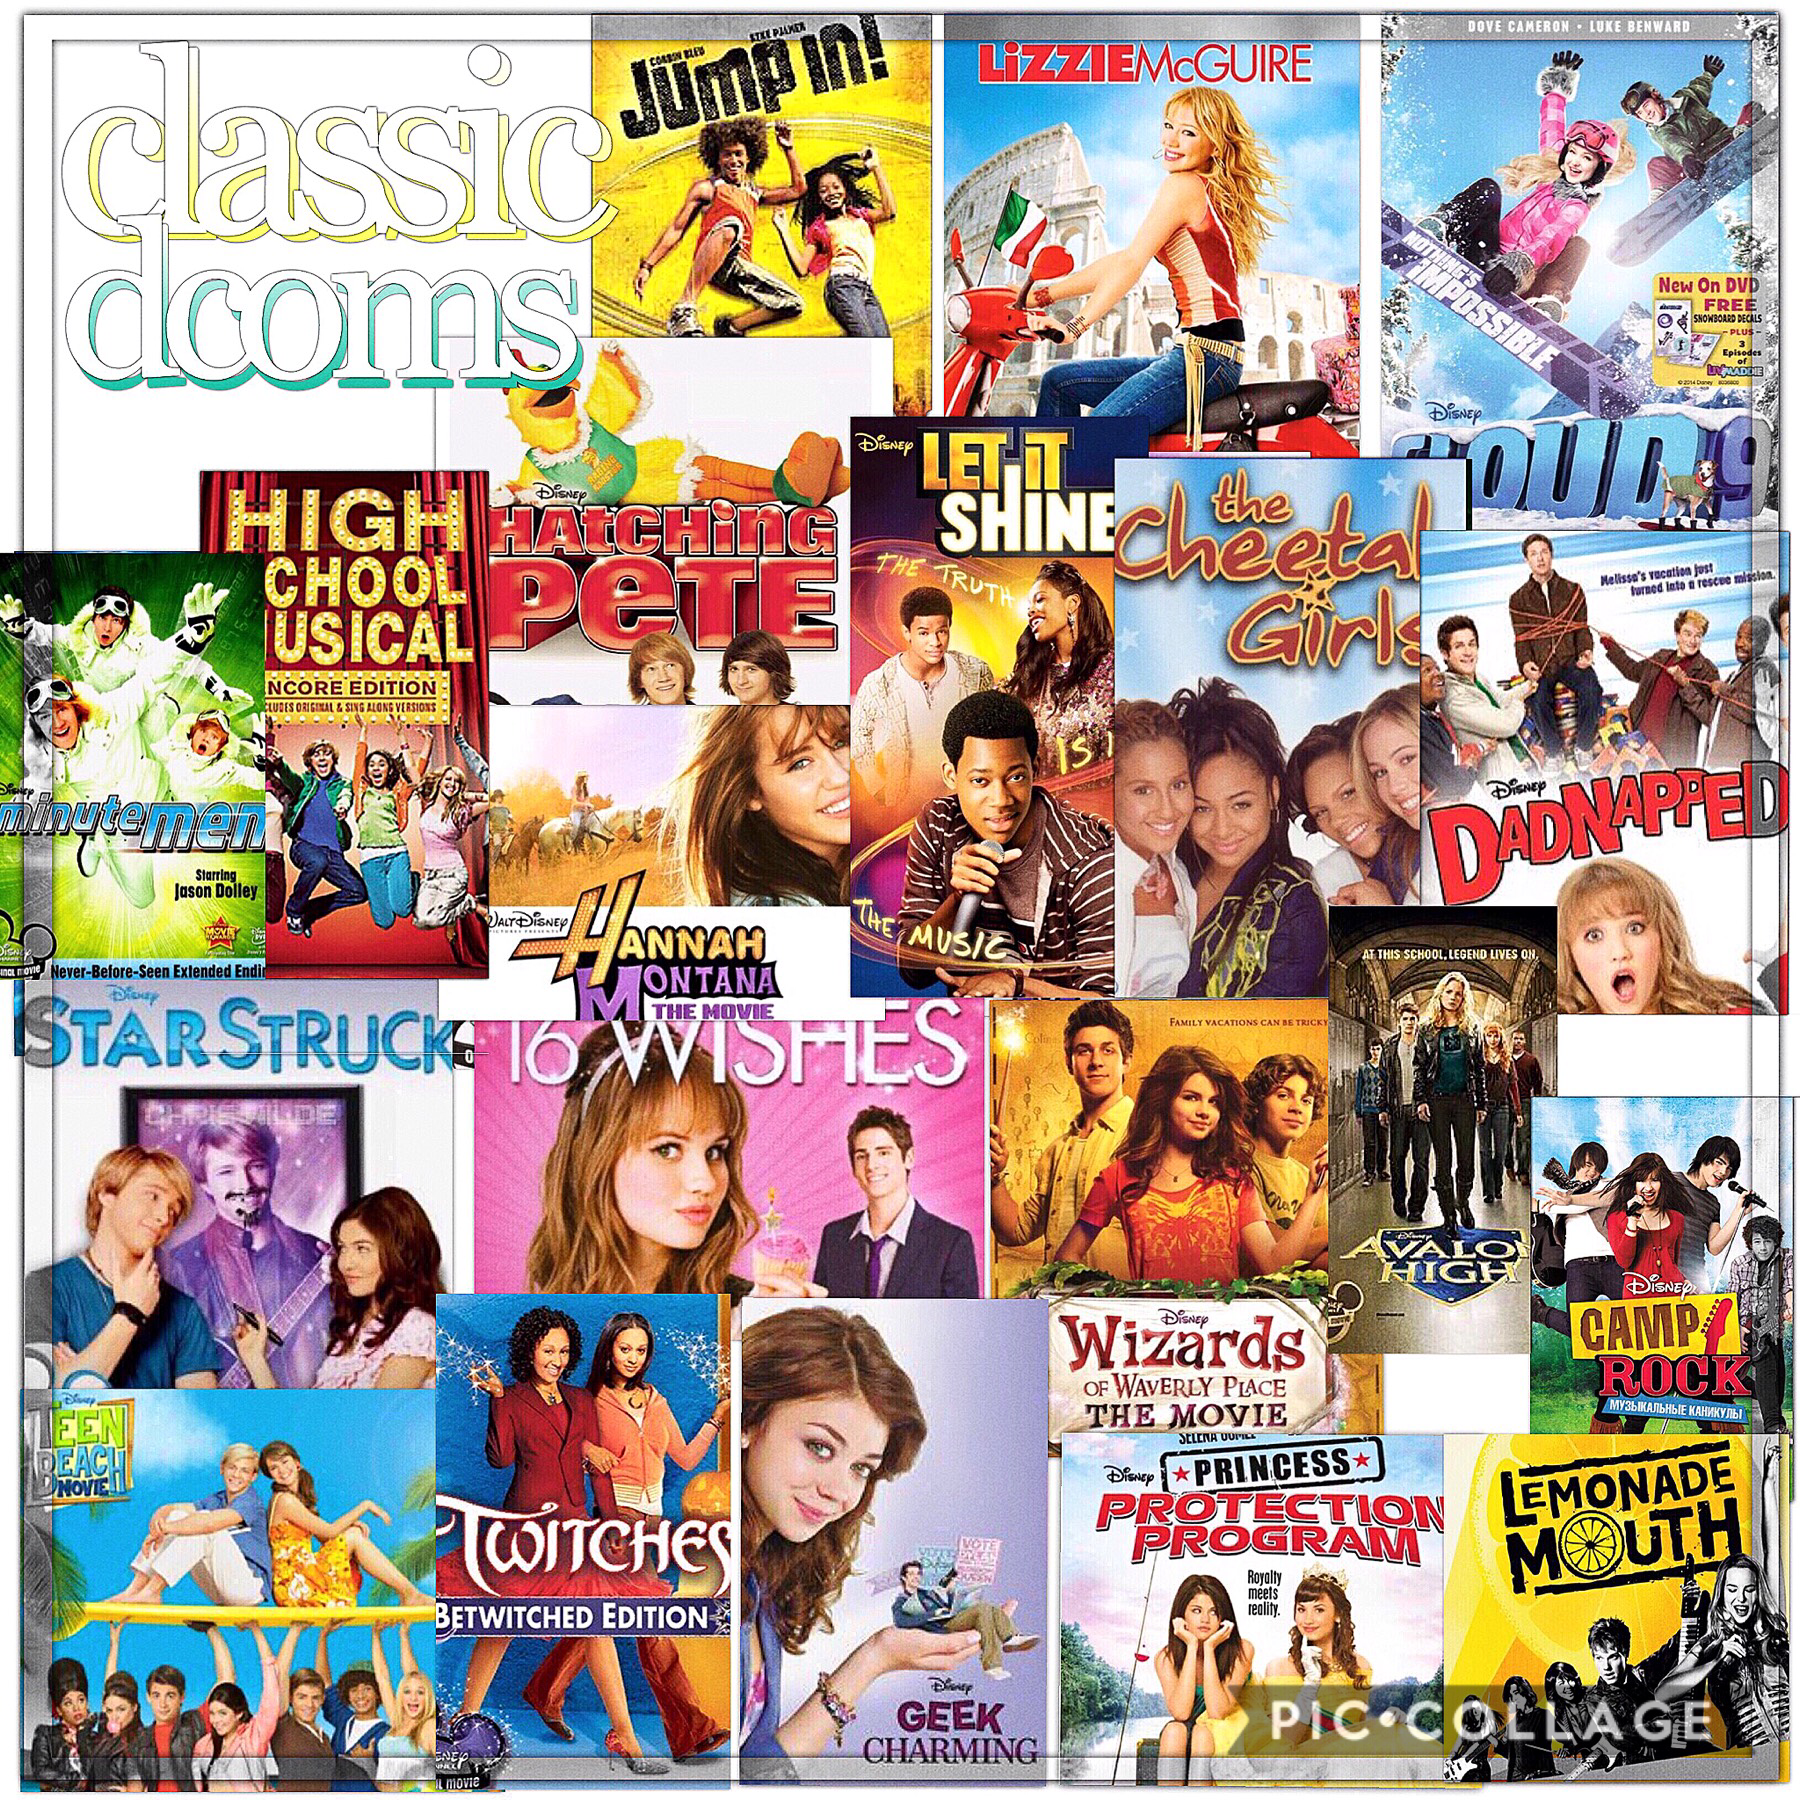 my favorites were let it shine, lemonade mouth, and Avalon high !! Comment what yours were